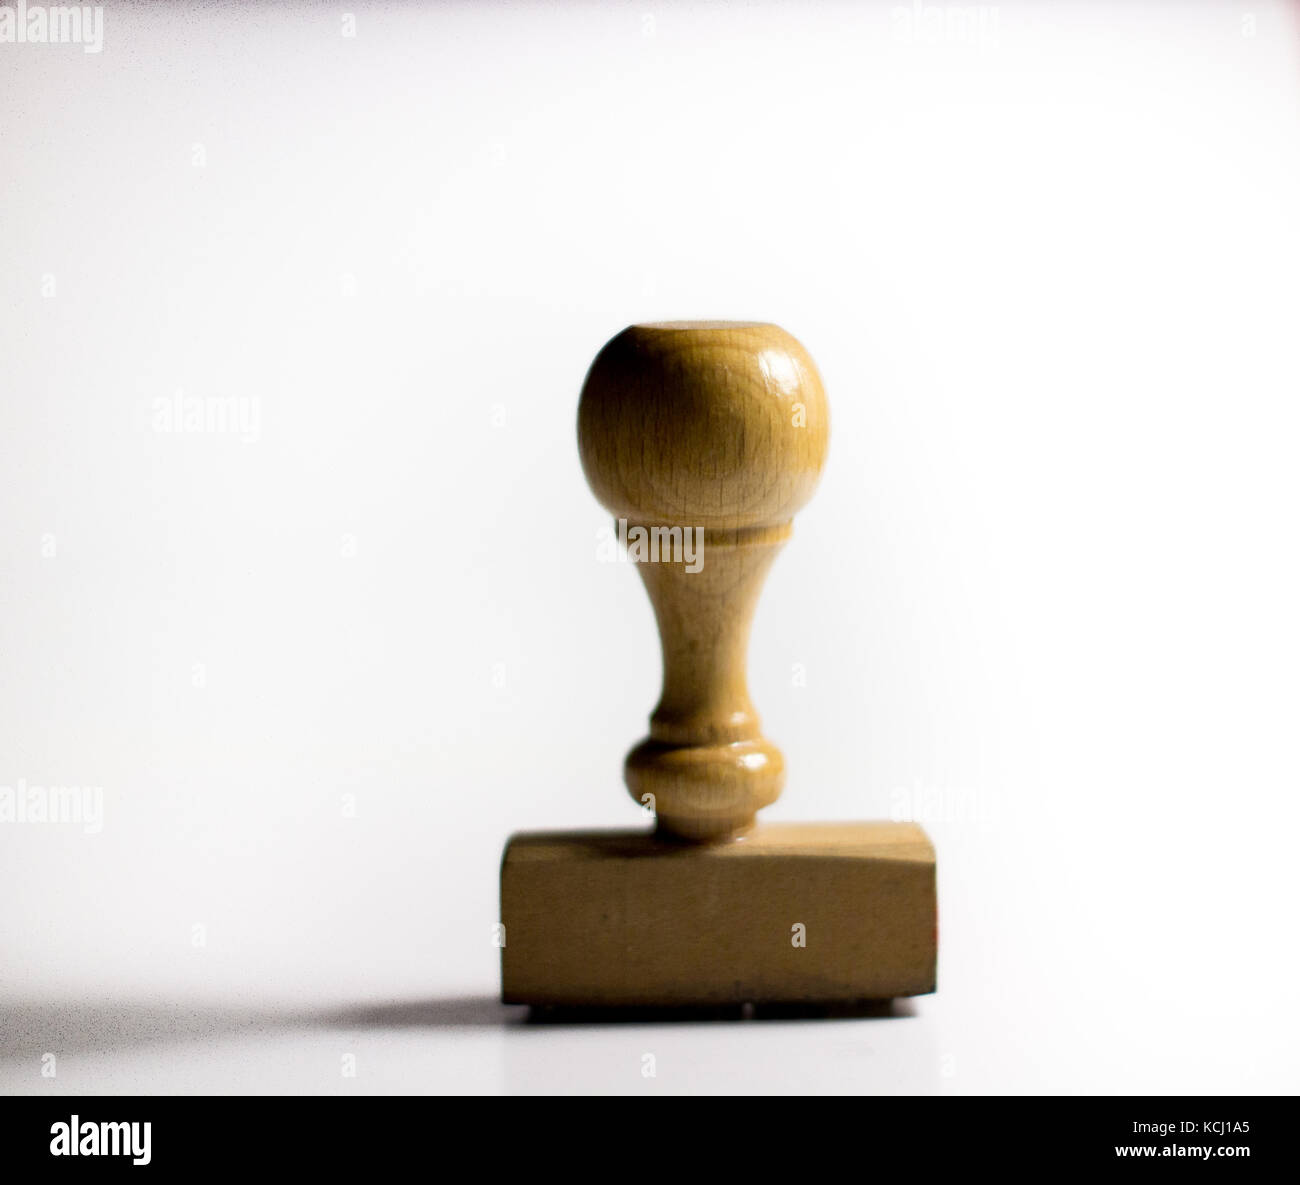 an office stamper on a white background waiting to approve some papers Stock Photo